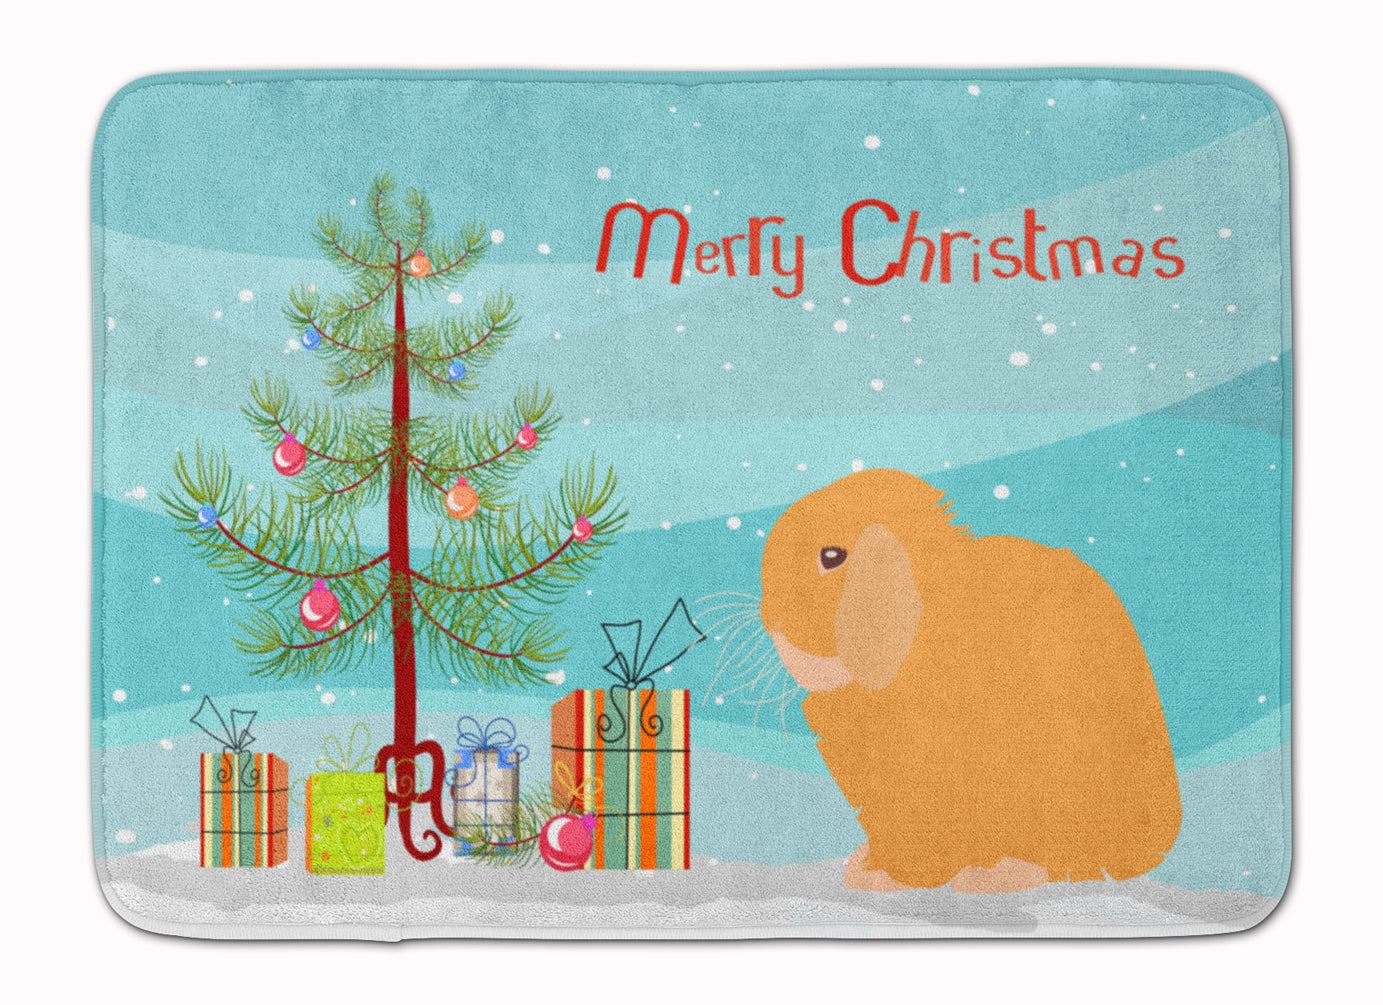 Holland Lop Rabbit Christmas Machine Washable Memory Foam Mat BB9335RUG by Caroline's Treasures